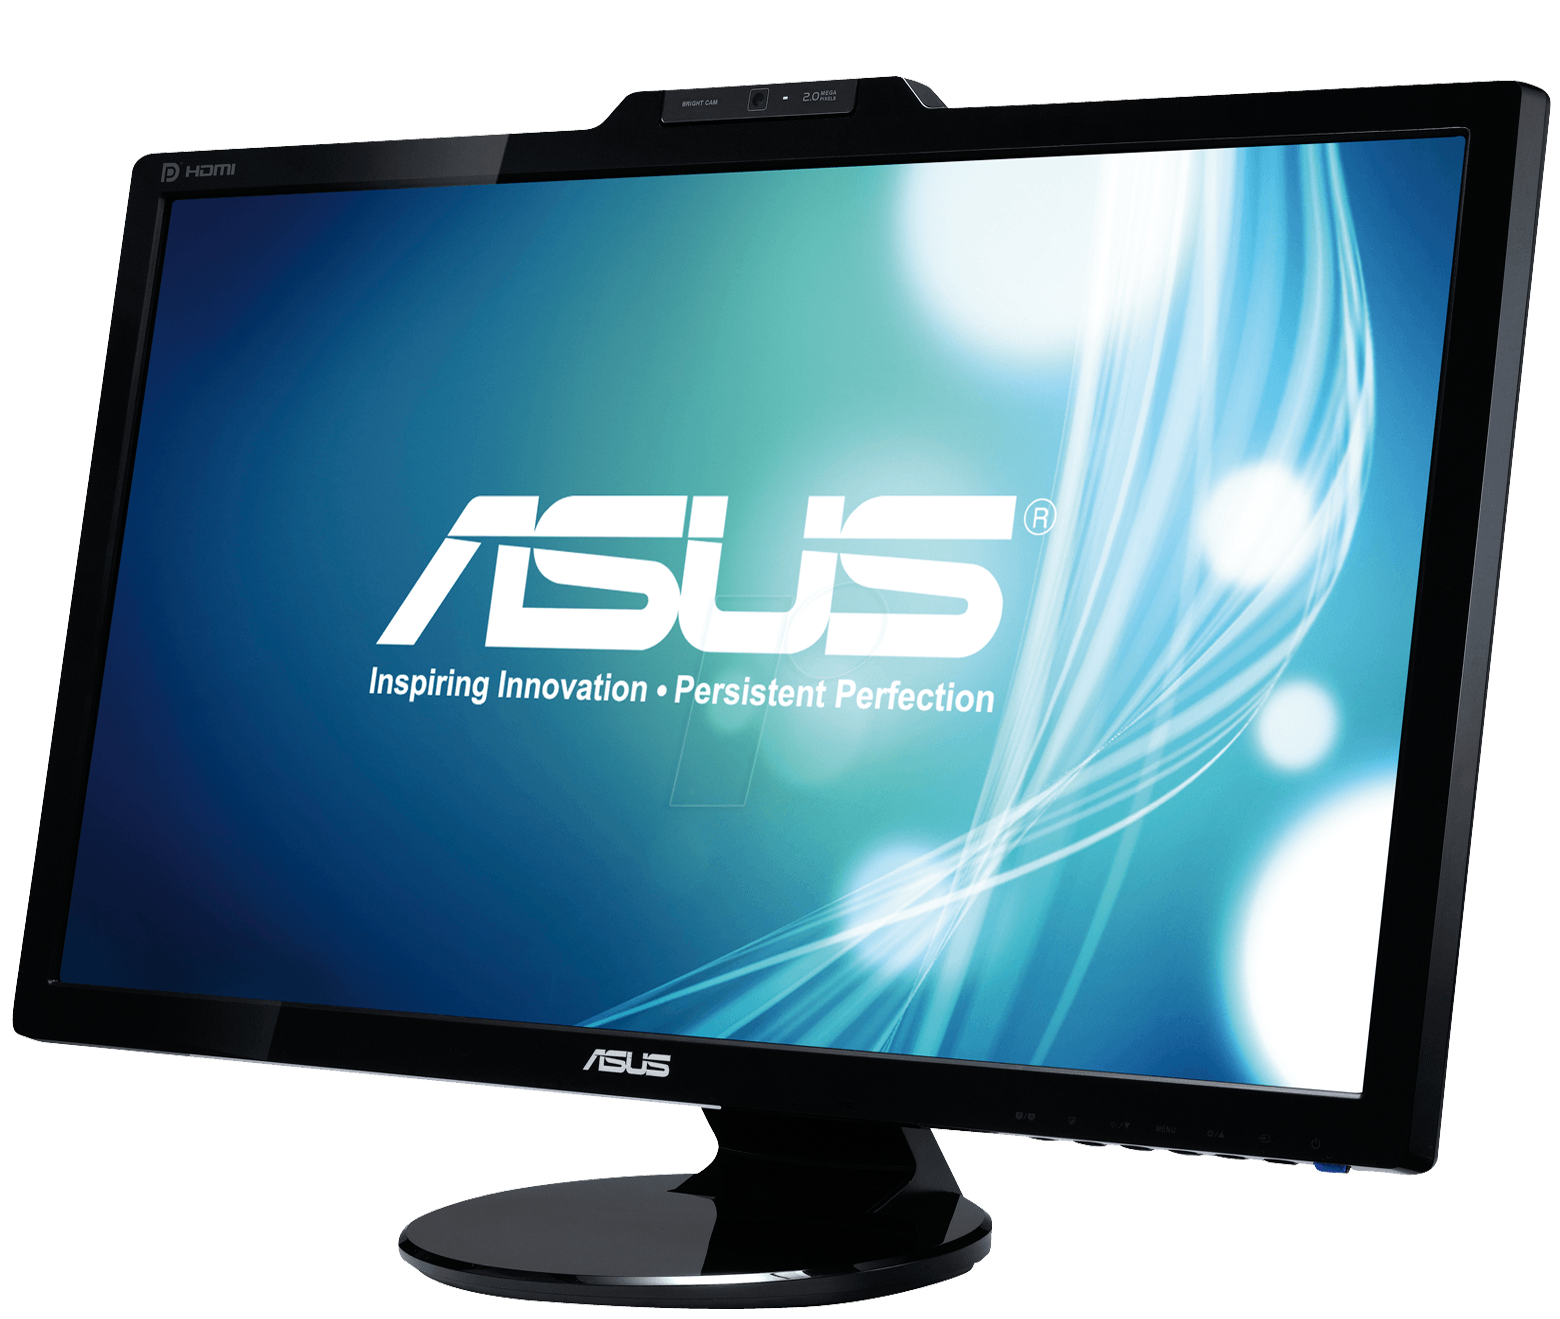 Asus | VK278Q | 27inch FHD (1920x1080) 2.0MP webcam | 27 inch | LED | 1920 x 1080 pixeli | 16:9 | 300 cd/m² | 10000000:1 | 2 ms | Dimensiune punct 0.31 mm | Unghi vizibilitate 170/160 ° | 1 x D-Sub | 1 x DVI | 1 x HDMI | 1 x Display Port | 2 x 3 W | Ken